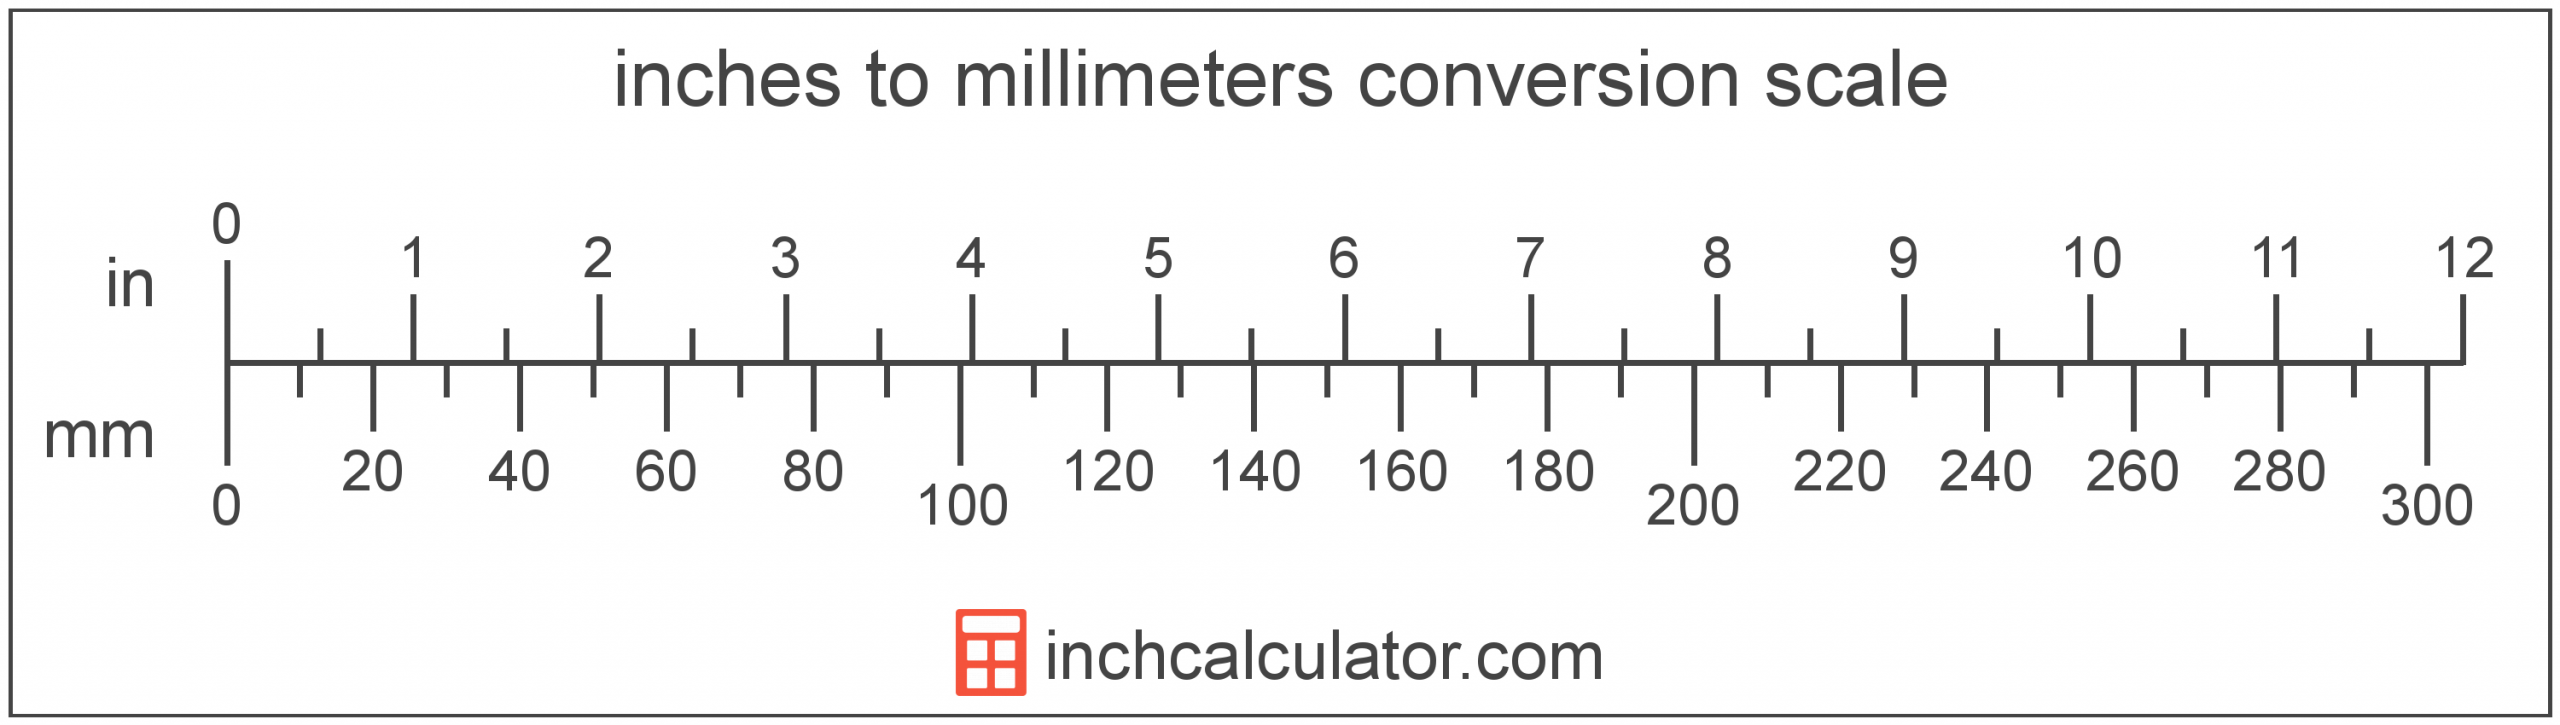 Inches To Mm Conversion (Inches To Millimeters) - Inch